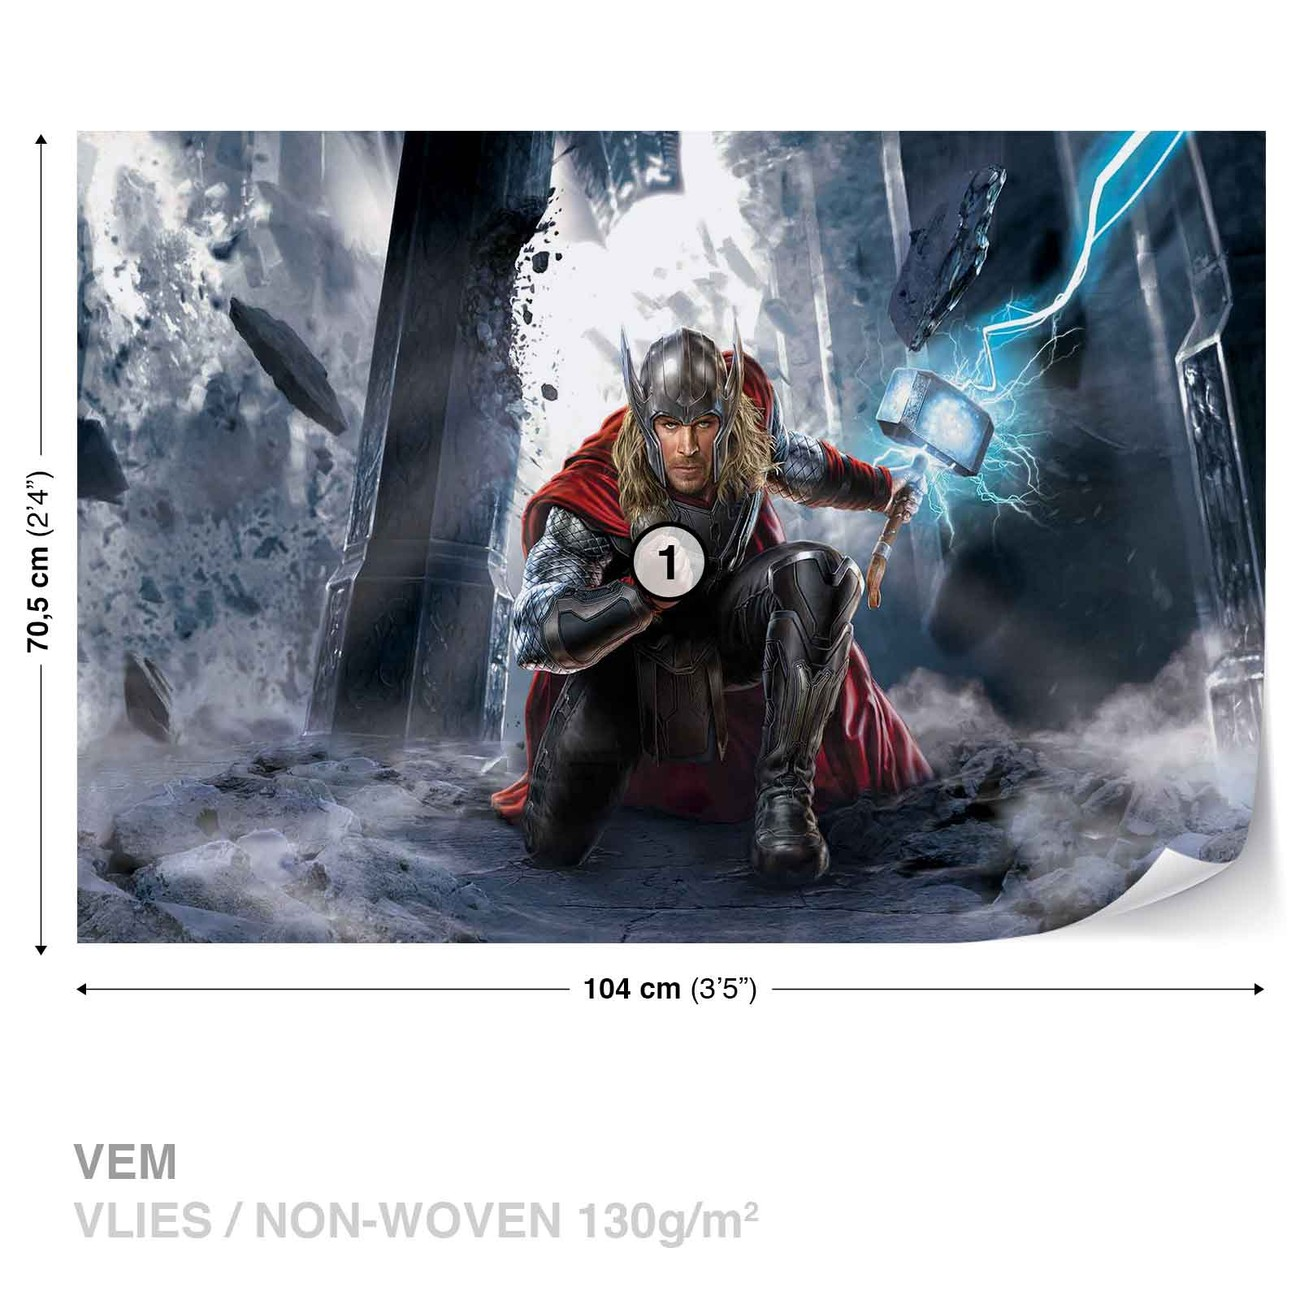 Marvel avengers thor wall paper mural buy at europosters for Avengers wall mural uk